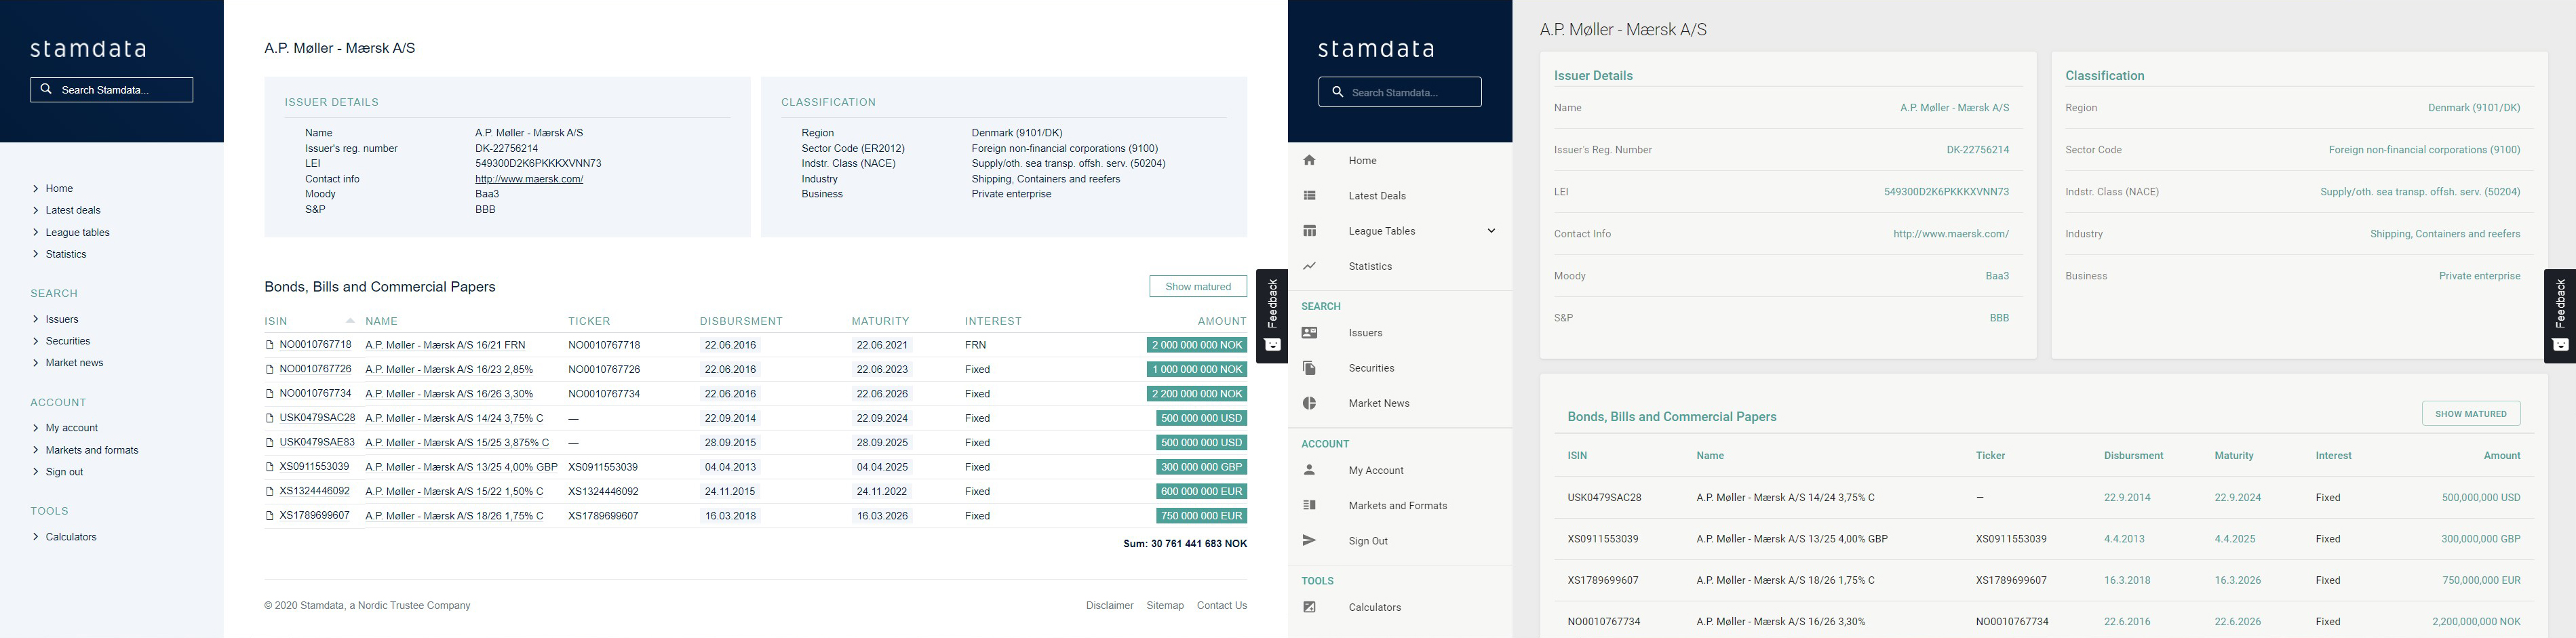 Stamdata Issuer Comparison